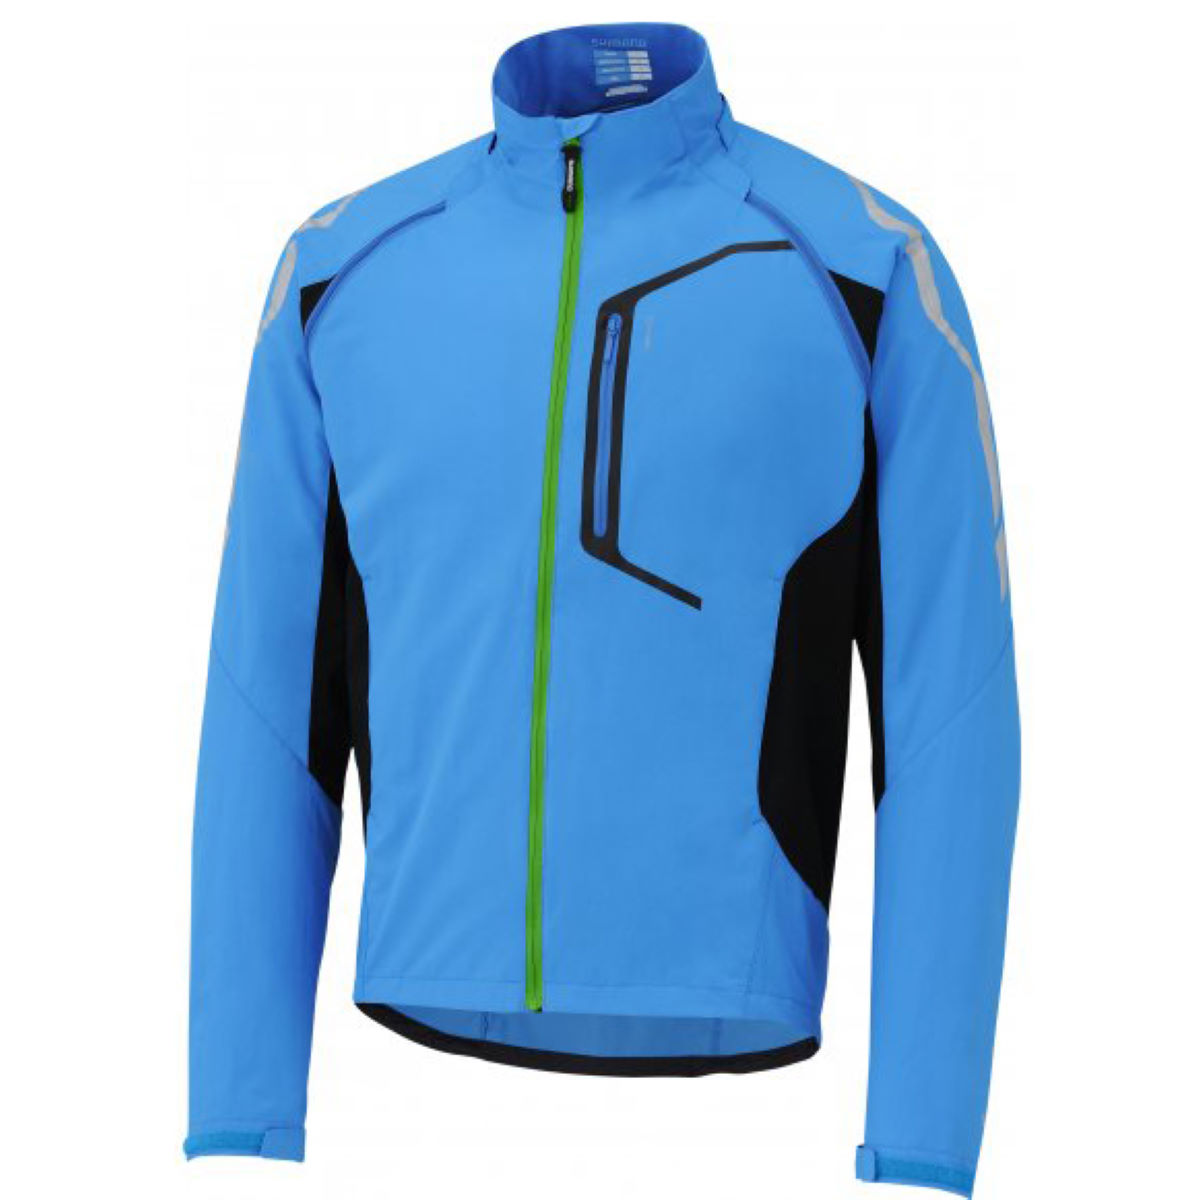 Veste Shimano Hybrid - Medium Lightening Blue Coupe-vents vélo